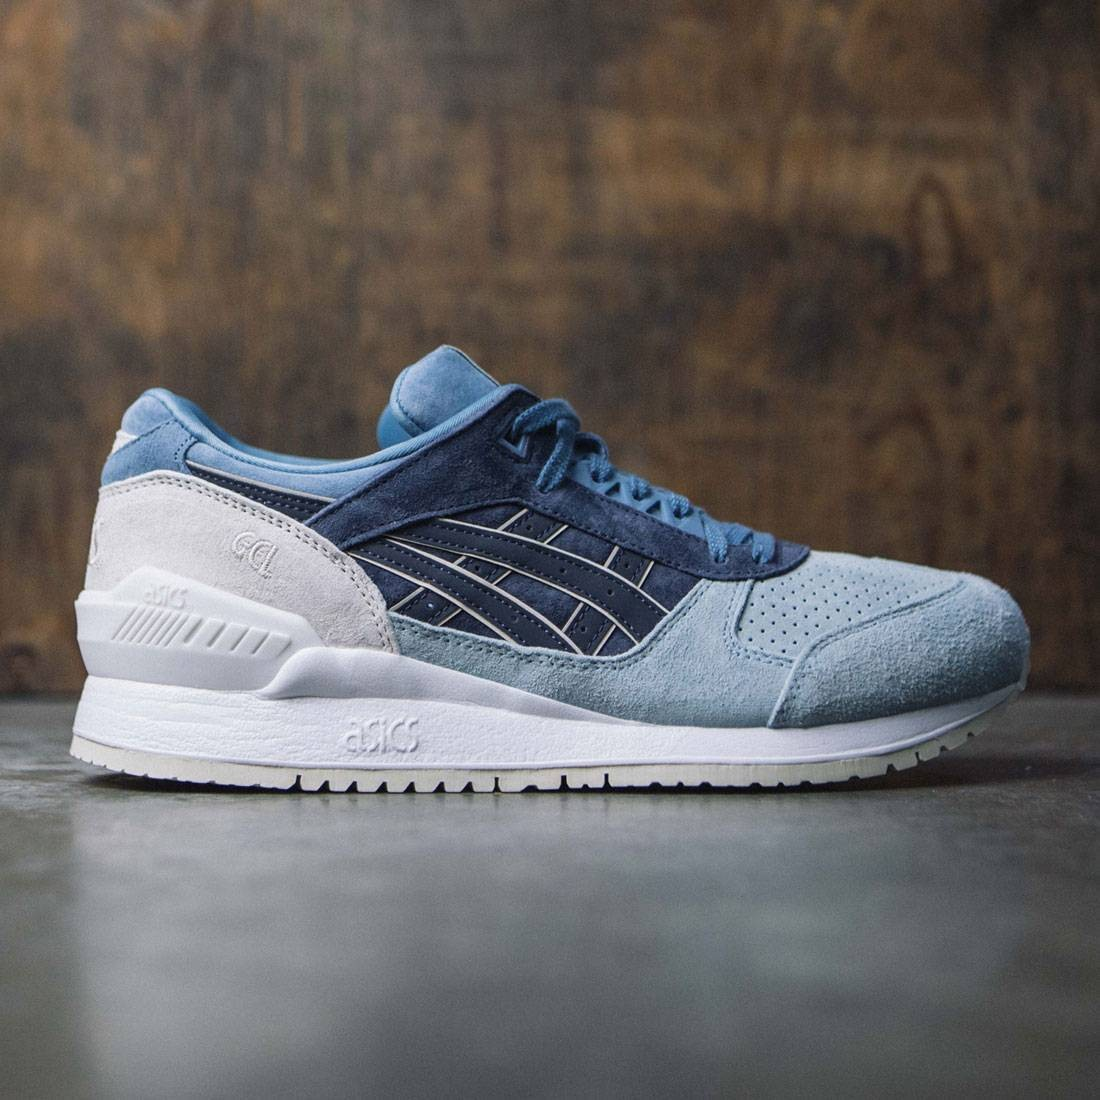 9d4164e46983 Asics Tiger Men Gel-Respector blue india ink